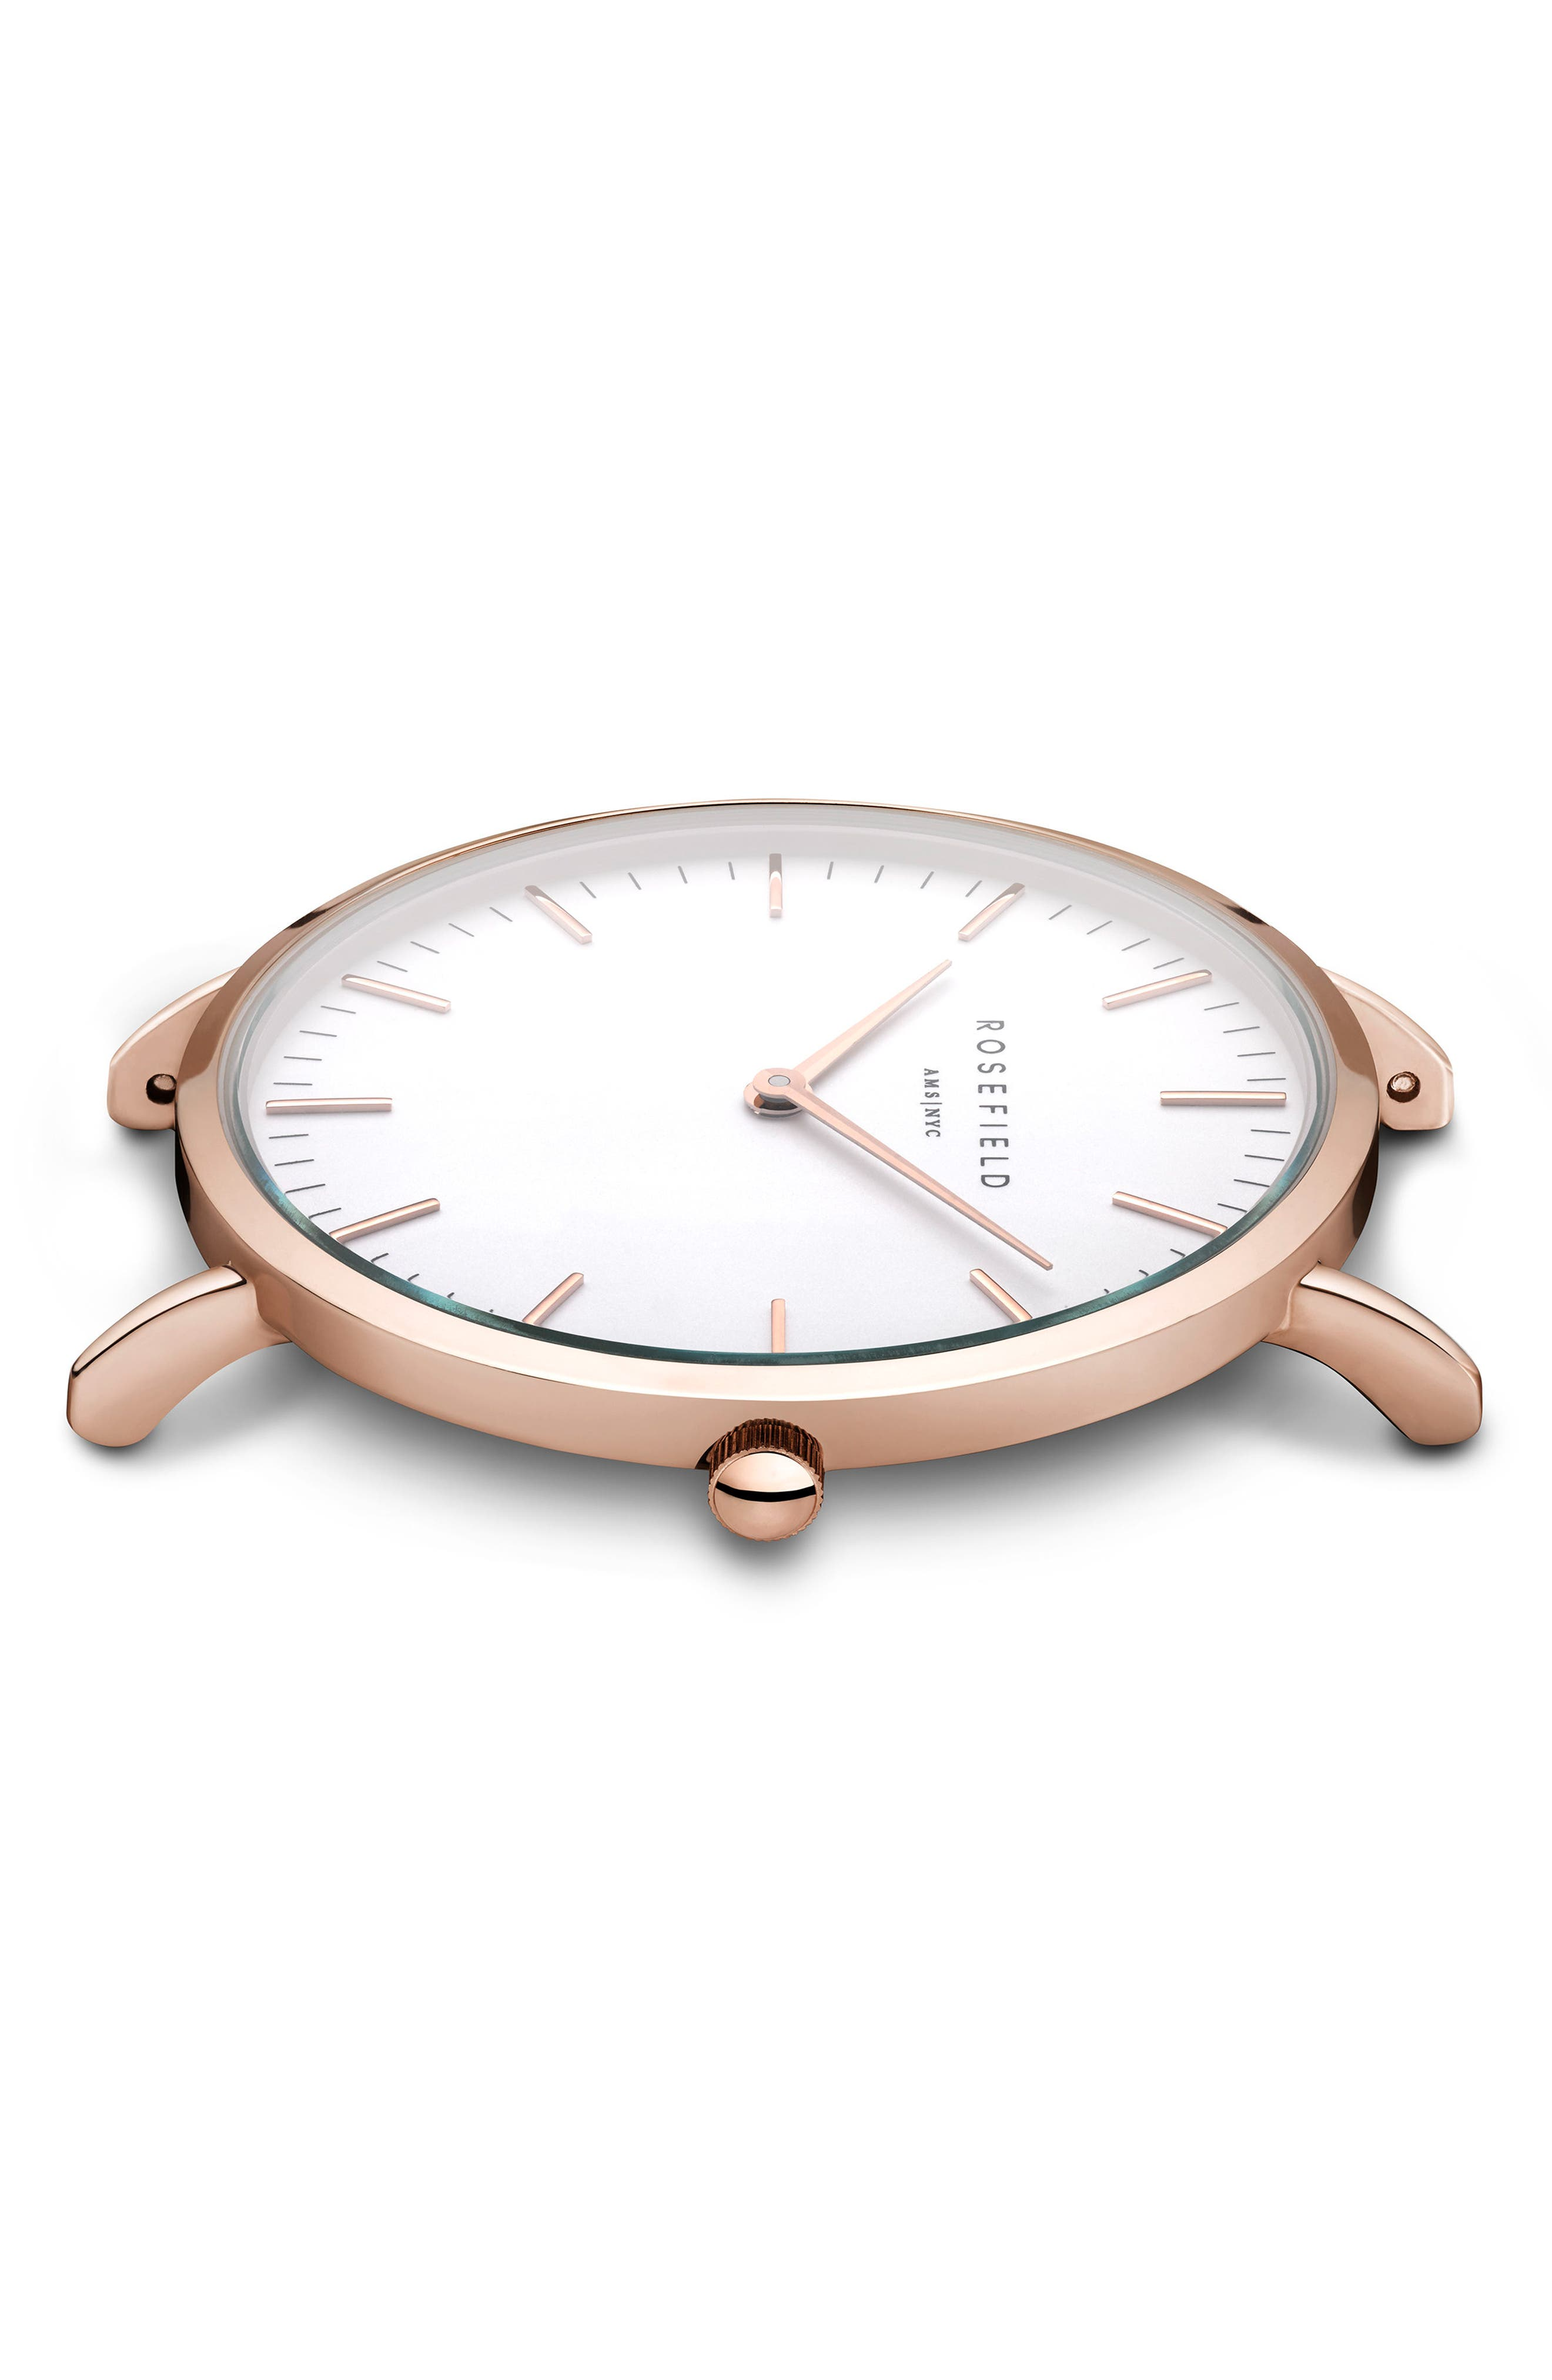 Tribeca Leather Strap Watch, 33mm,                             Alternate thumbnail 3, color,                             Black/ White/ Rose Gold